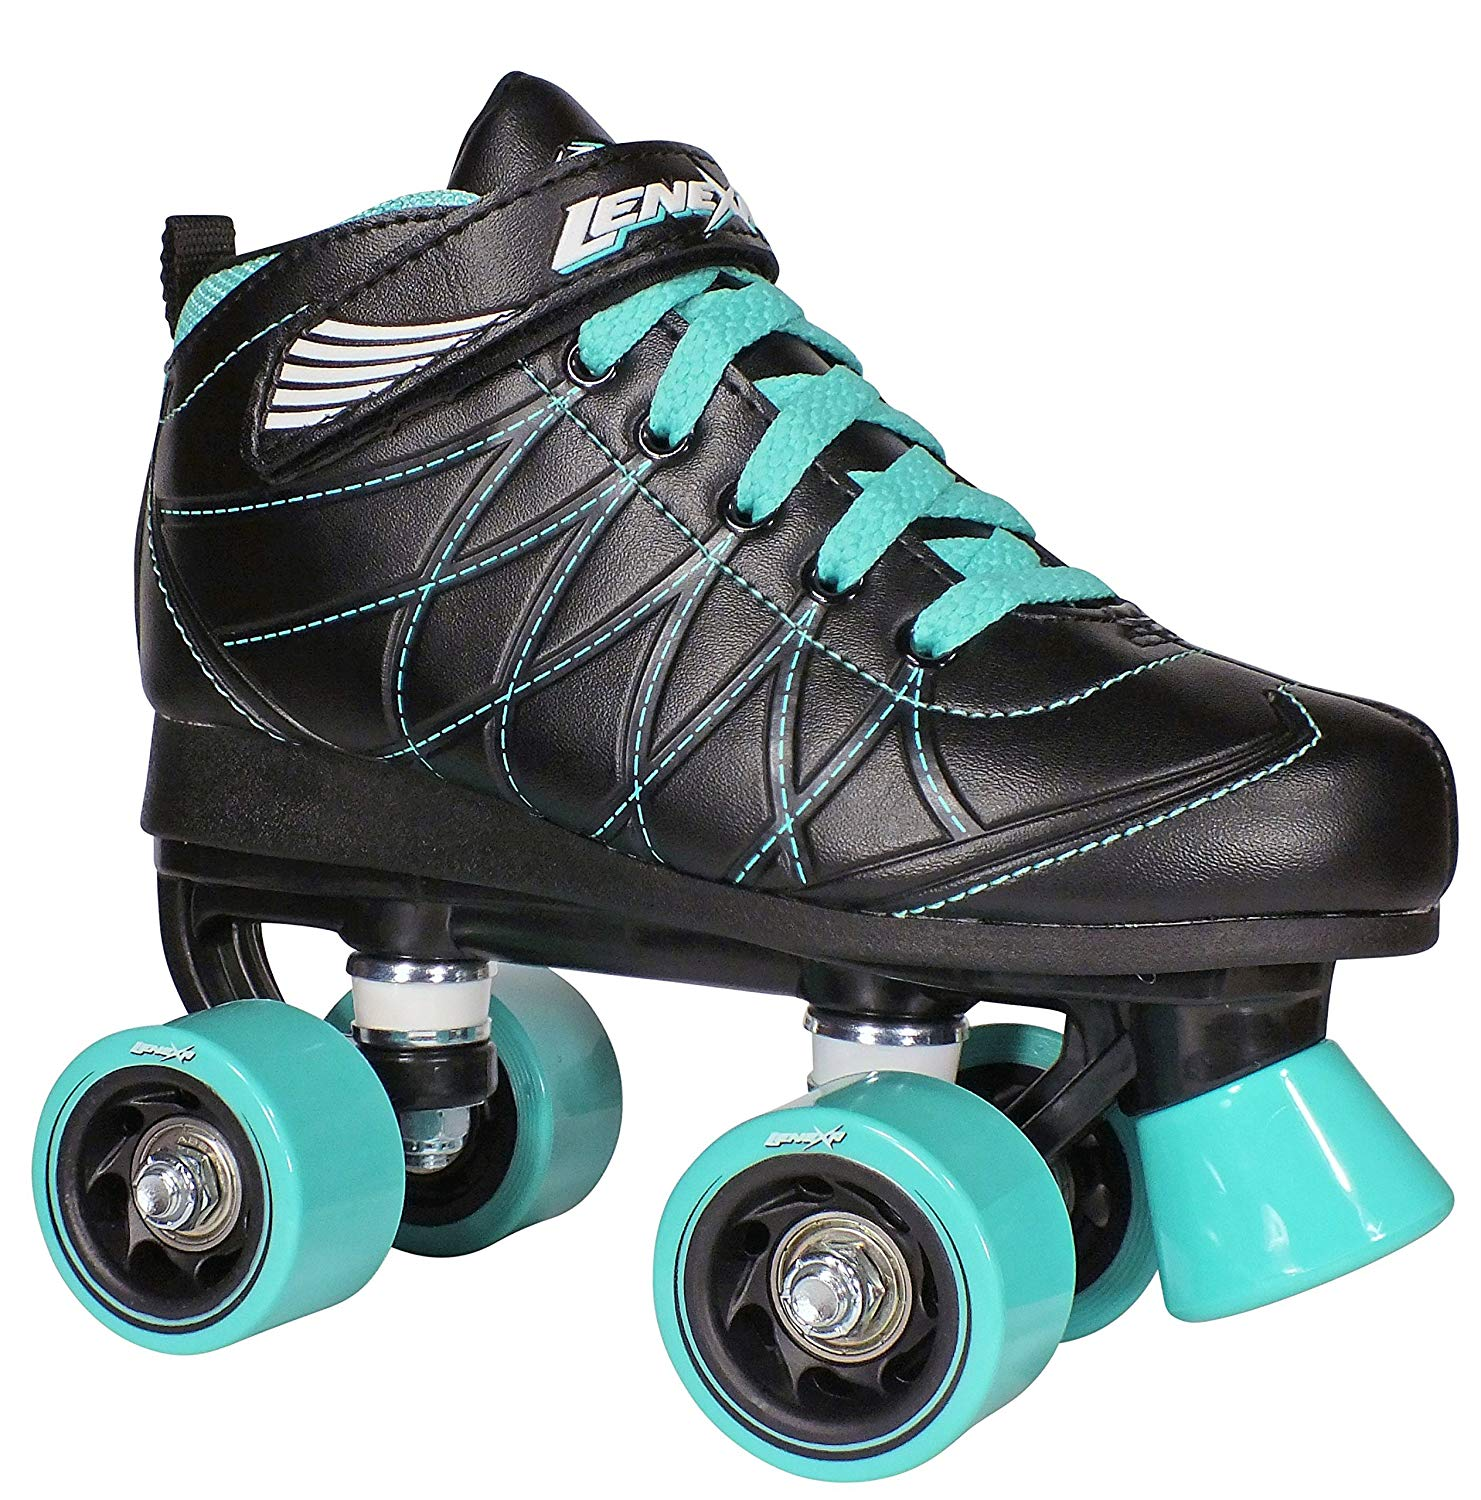 Lenexa Hoopla Kids Roller Skates for Kids Children